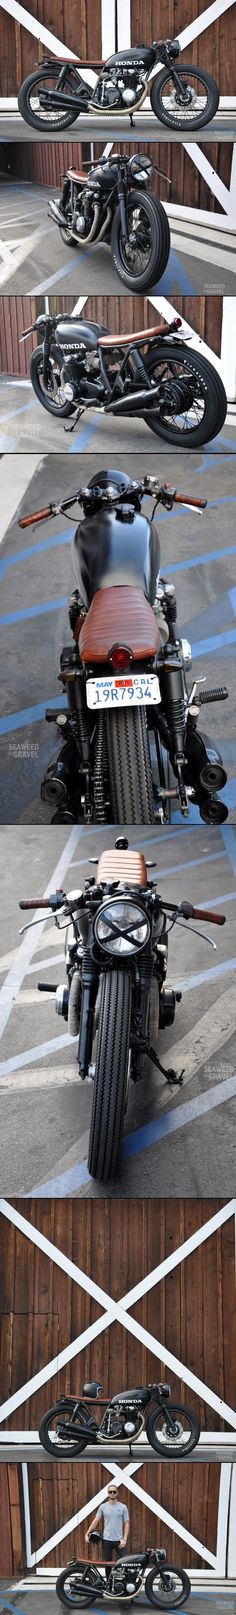 http://seaweedandgravel.com/blogs/news/7831025-cb550-custom-build-by-s-g-builder-brady-young